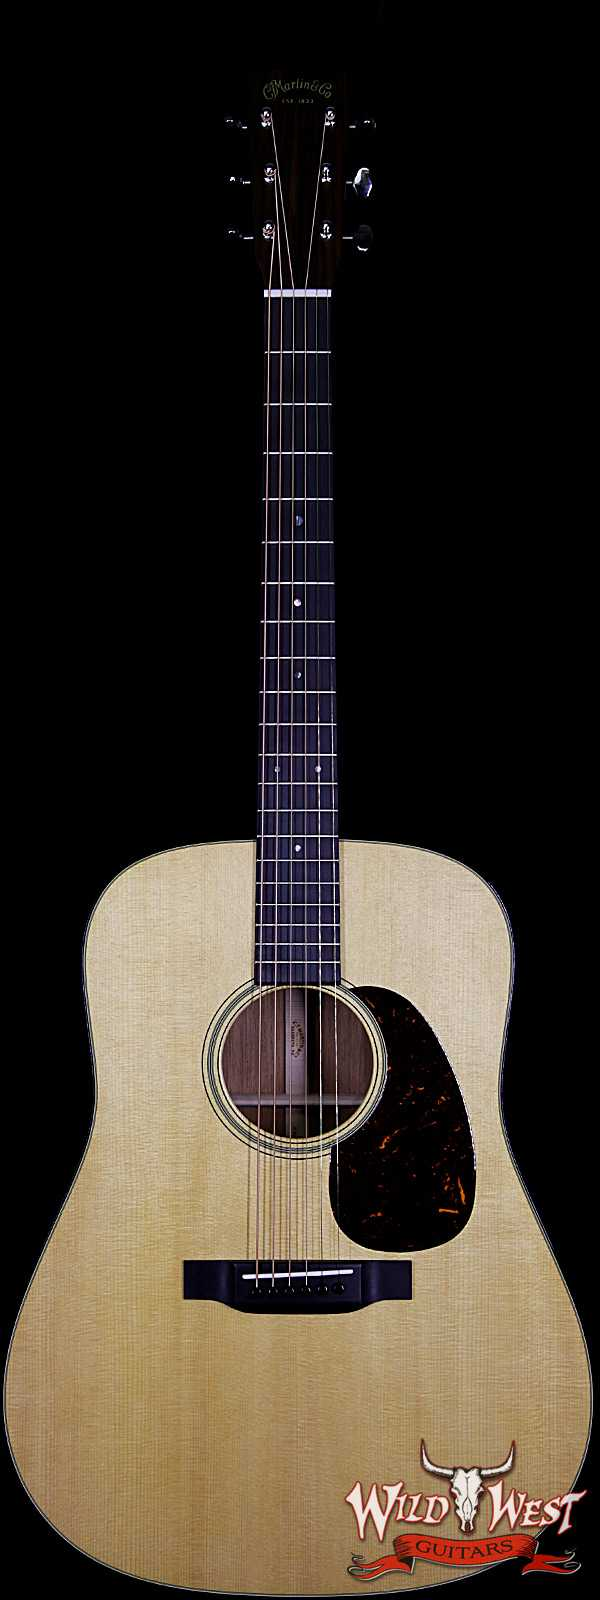 Martin USA Standard Series D-18 Dreadnought Guitar Natural